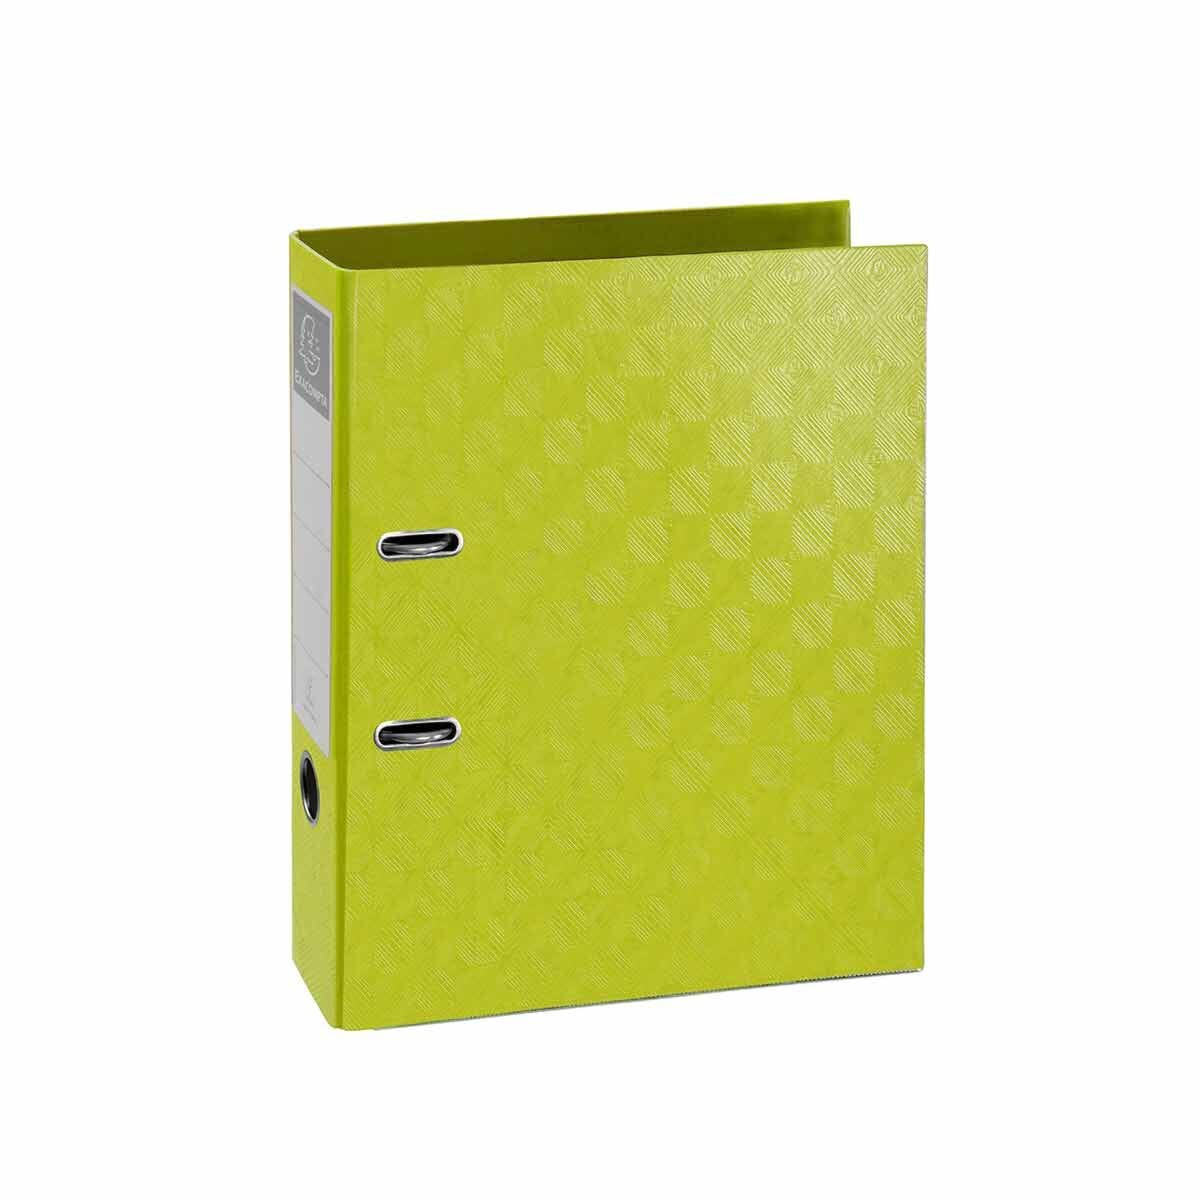 Exacompta 1928 PreTouch Lever Arch File A4 70mm Pack of 10 Lime Green